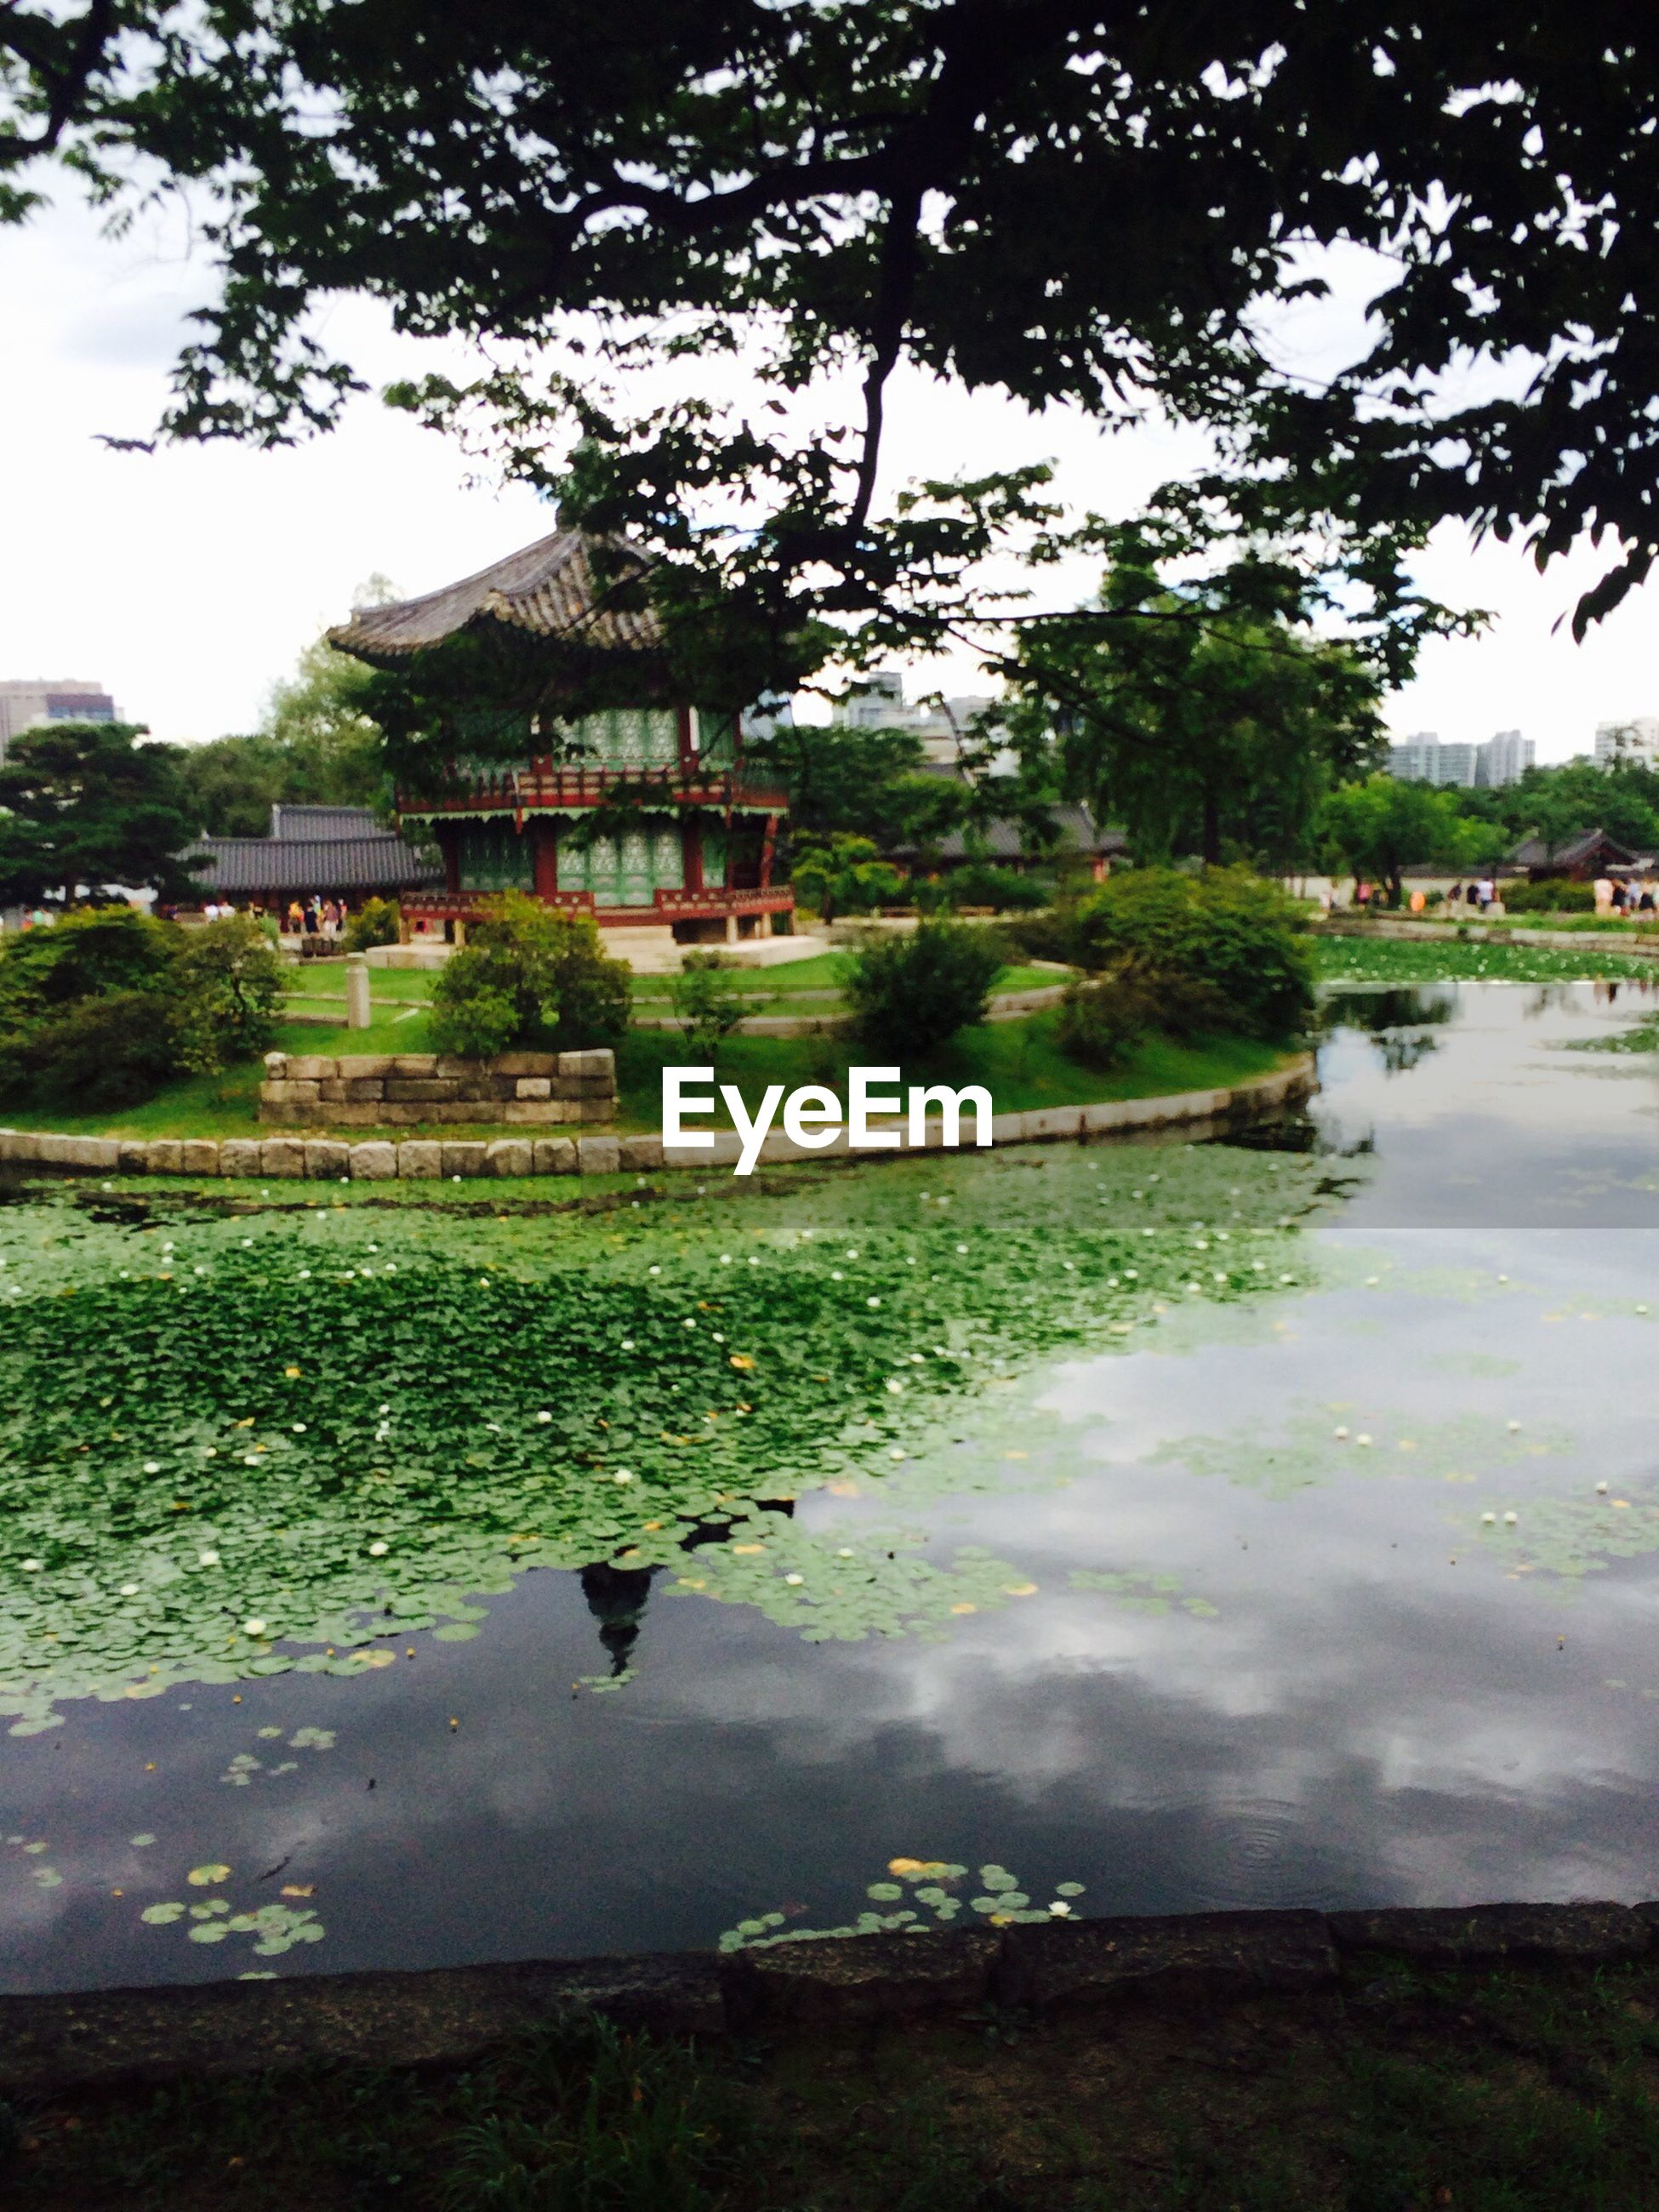 water, tree, architecture, built structure, building exterior, pond, grass, reflection, park - man made space, green color, nature, lake, fountain, bird, river, day, sky, growth, tranquility, outdoors